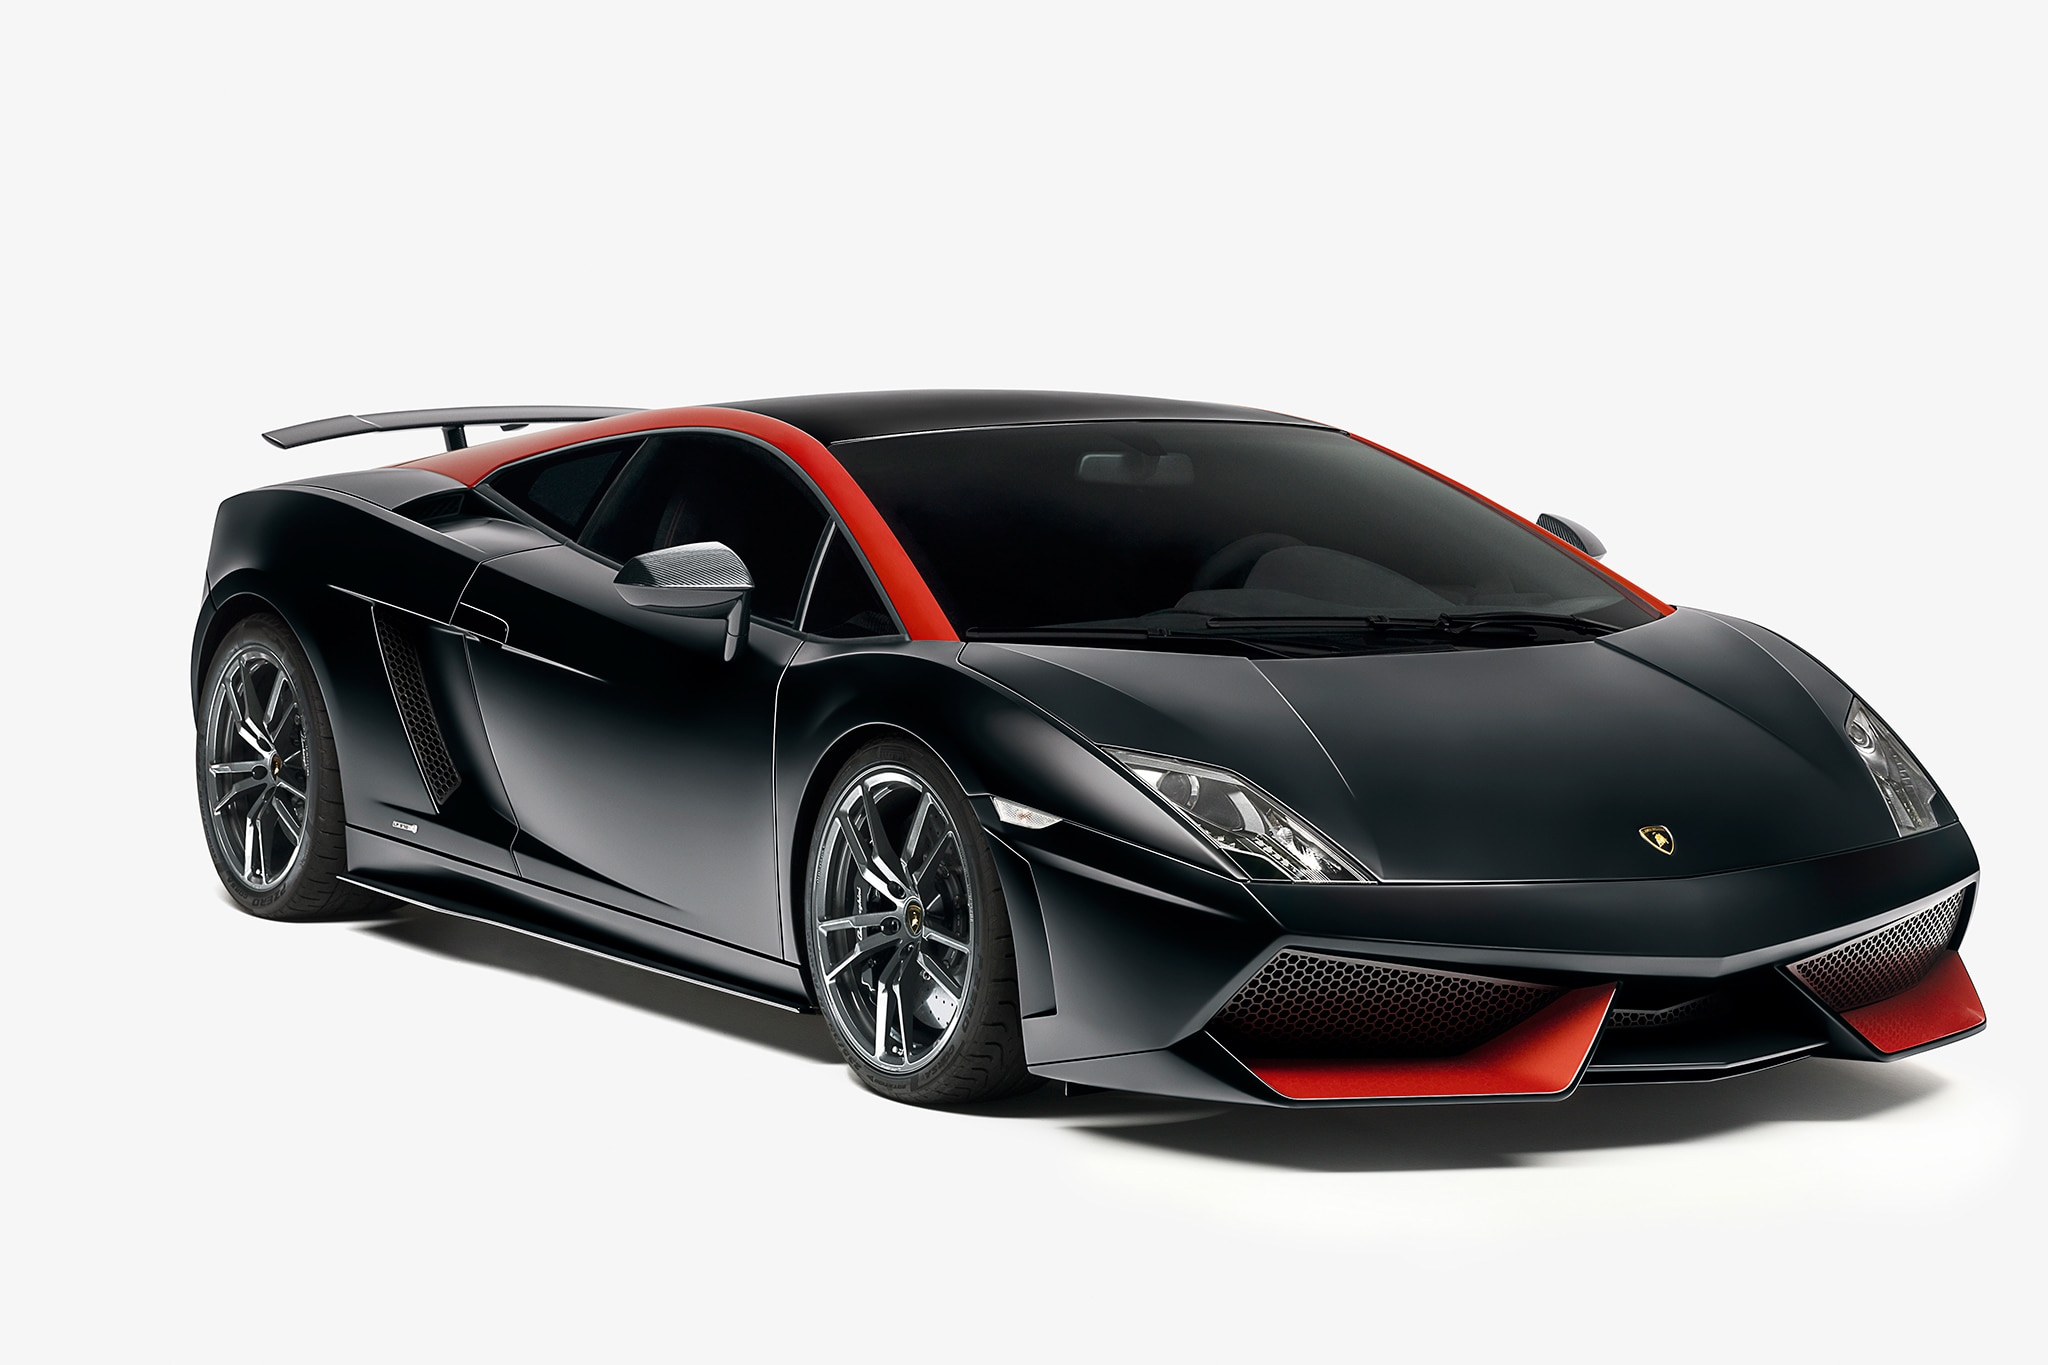 2014 Lamborghini Gallardo LP 570 4 Superleggera